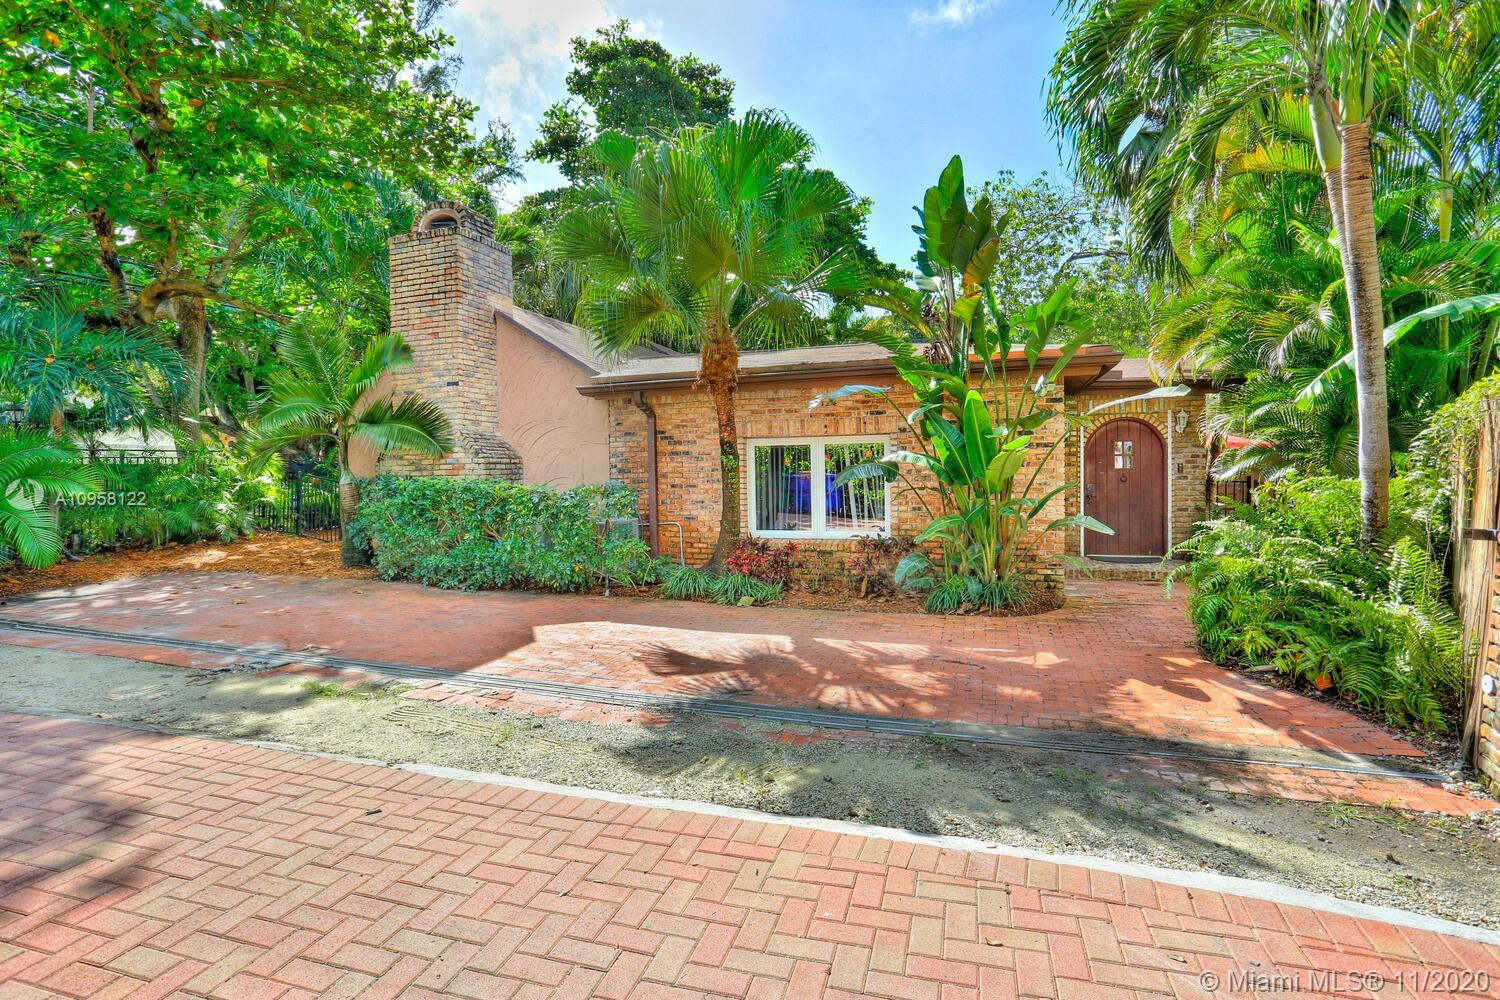 Live in the picturesque & historic village of Coconut Grove, just steps to galleries, boutiques, cafes and bayfront parks & marinas. Charming bungalow on a quiet cul-de-sac, canopied by mature oaks and surrounded by lush tropical landscaping. Totally renovated, including impact glass throughout. 3BR/3BA main house with light-filled living spaces that feature wood-beamed ceilings, original fireplace and stone & wood flooring. Ideal layout with formal living & dining spaces as well as a large open concept kitchen and adjacent family room. Expansive master suite (with oversized walk-in closet and luxurious bath) overlooks a private patio. Separate guest house (1BR/1BA + kitchen & living area). Tranquil & ultra-private garden with wood decking & fire pit area set within native landscaping.